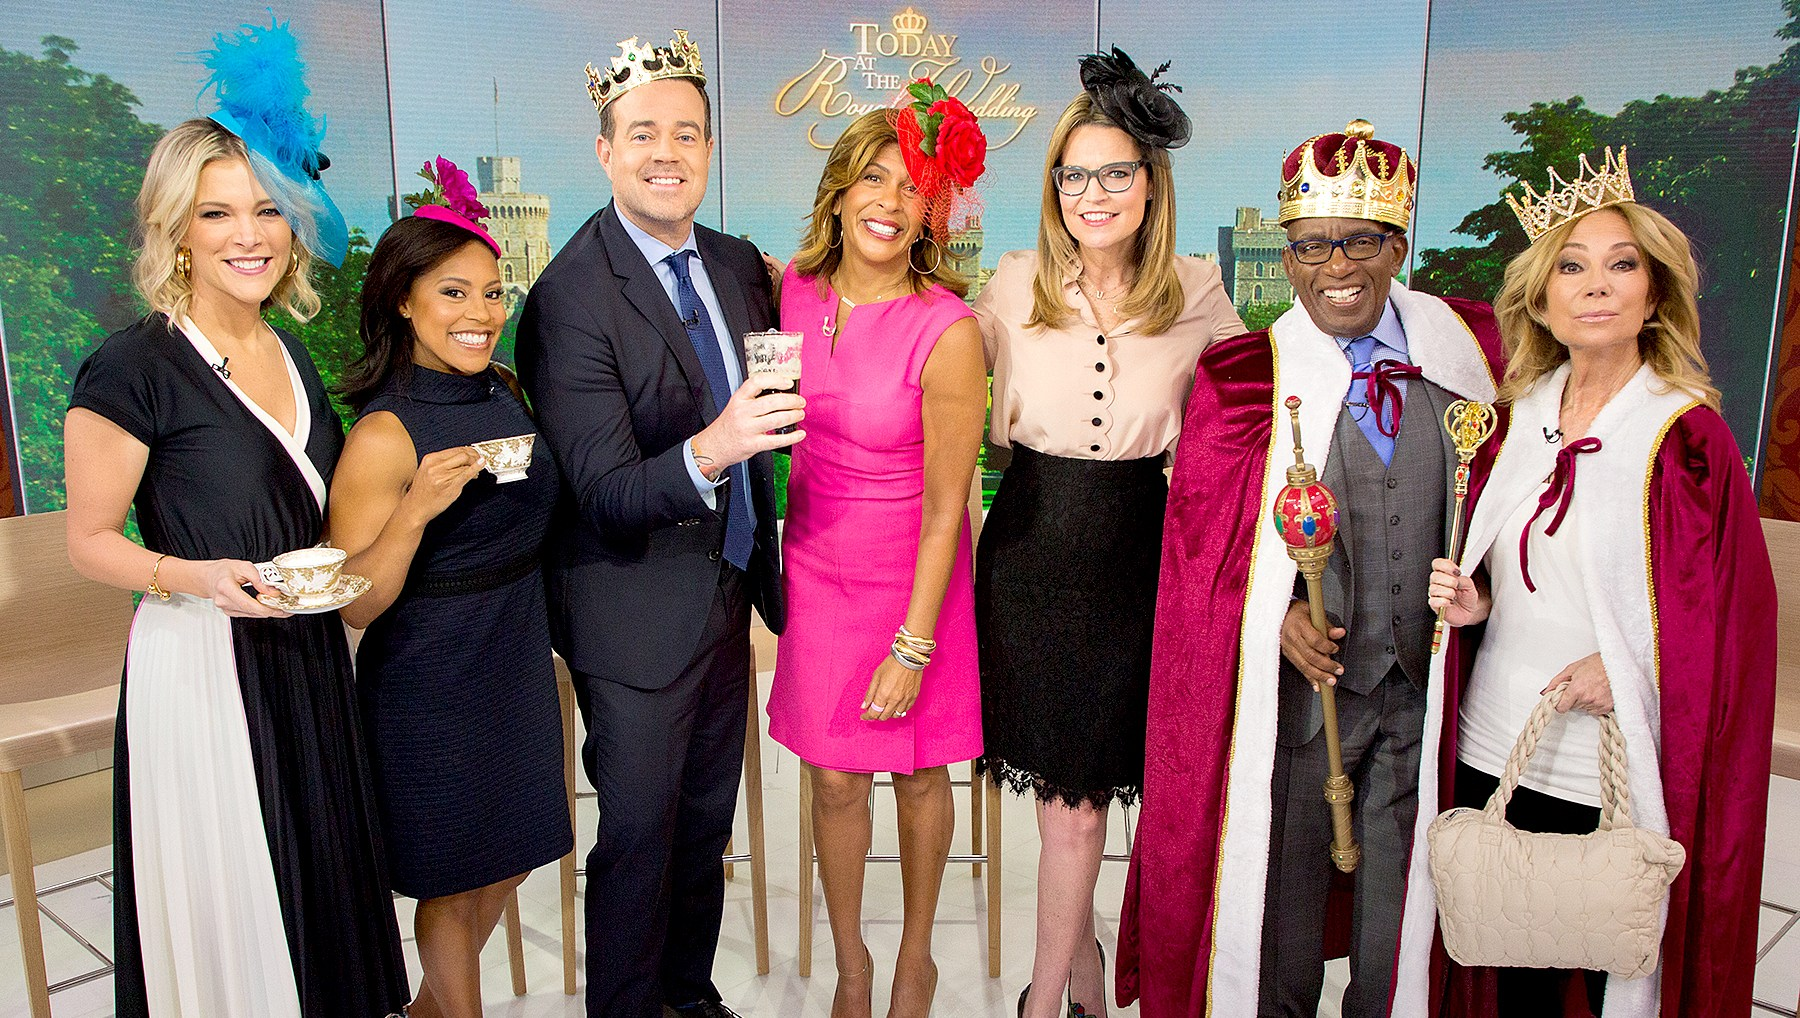 The-Today-Show-royals